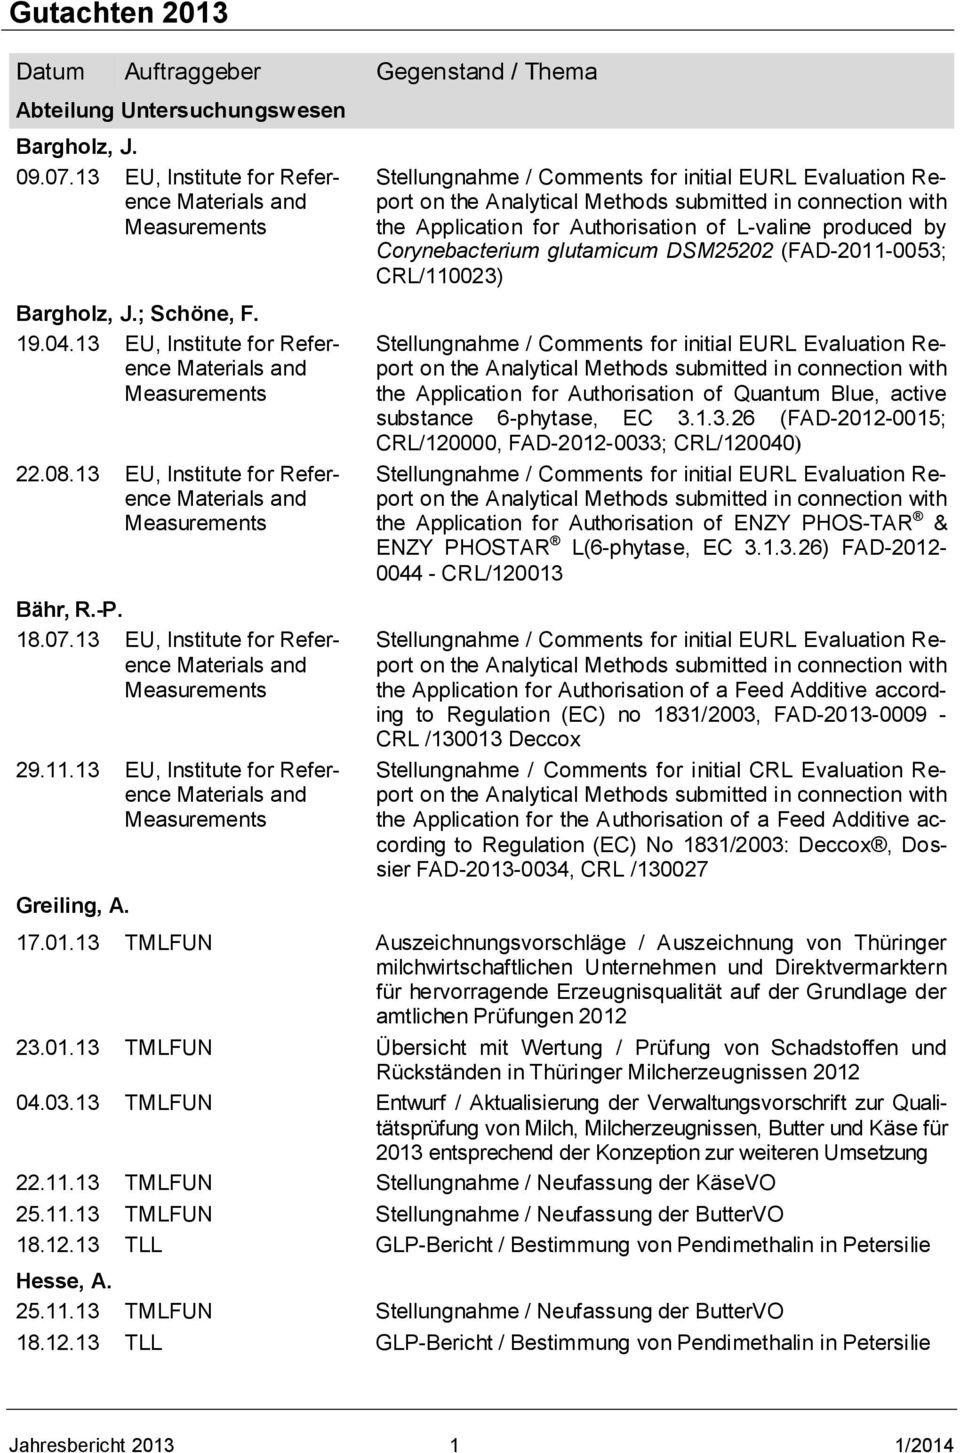 13 EU, Institute for Reference the Application for Authorisation of L-valine produced by Corynebacterium glutamicum DSM25202 (FAD-2011-0053; CRL/110023) the Application for Authorisation of Quantum